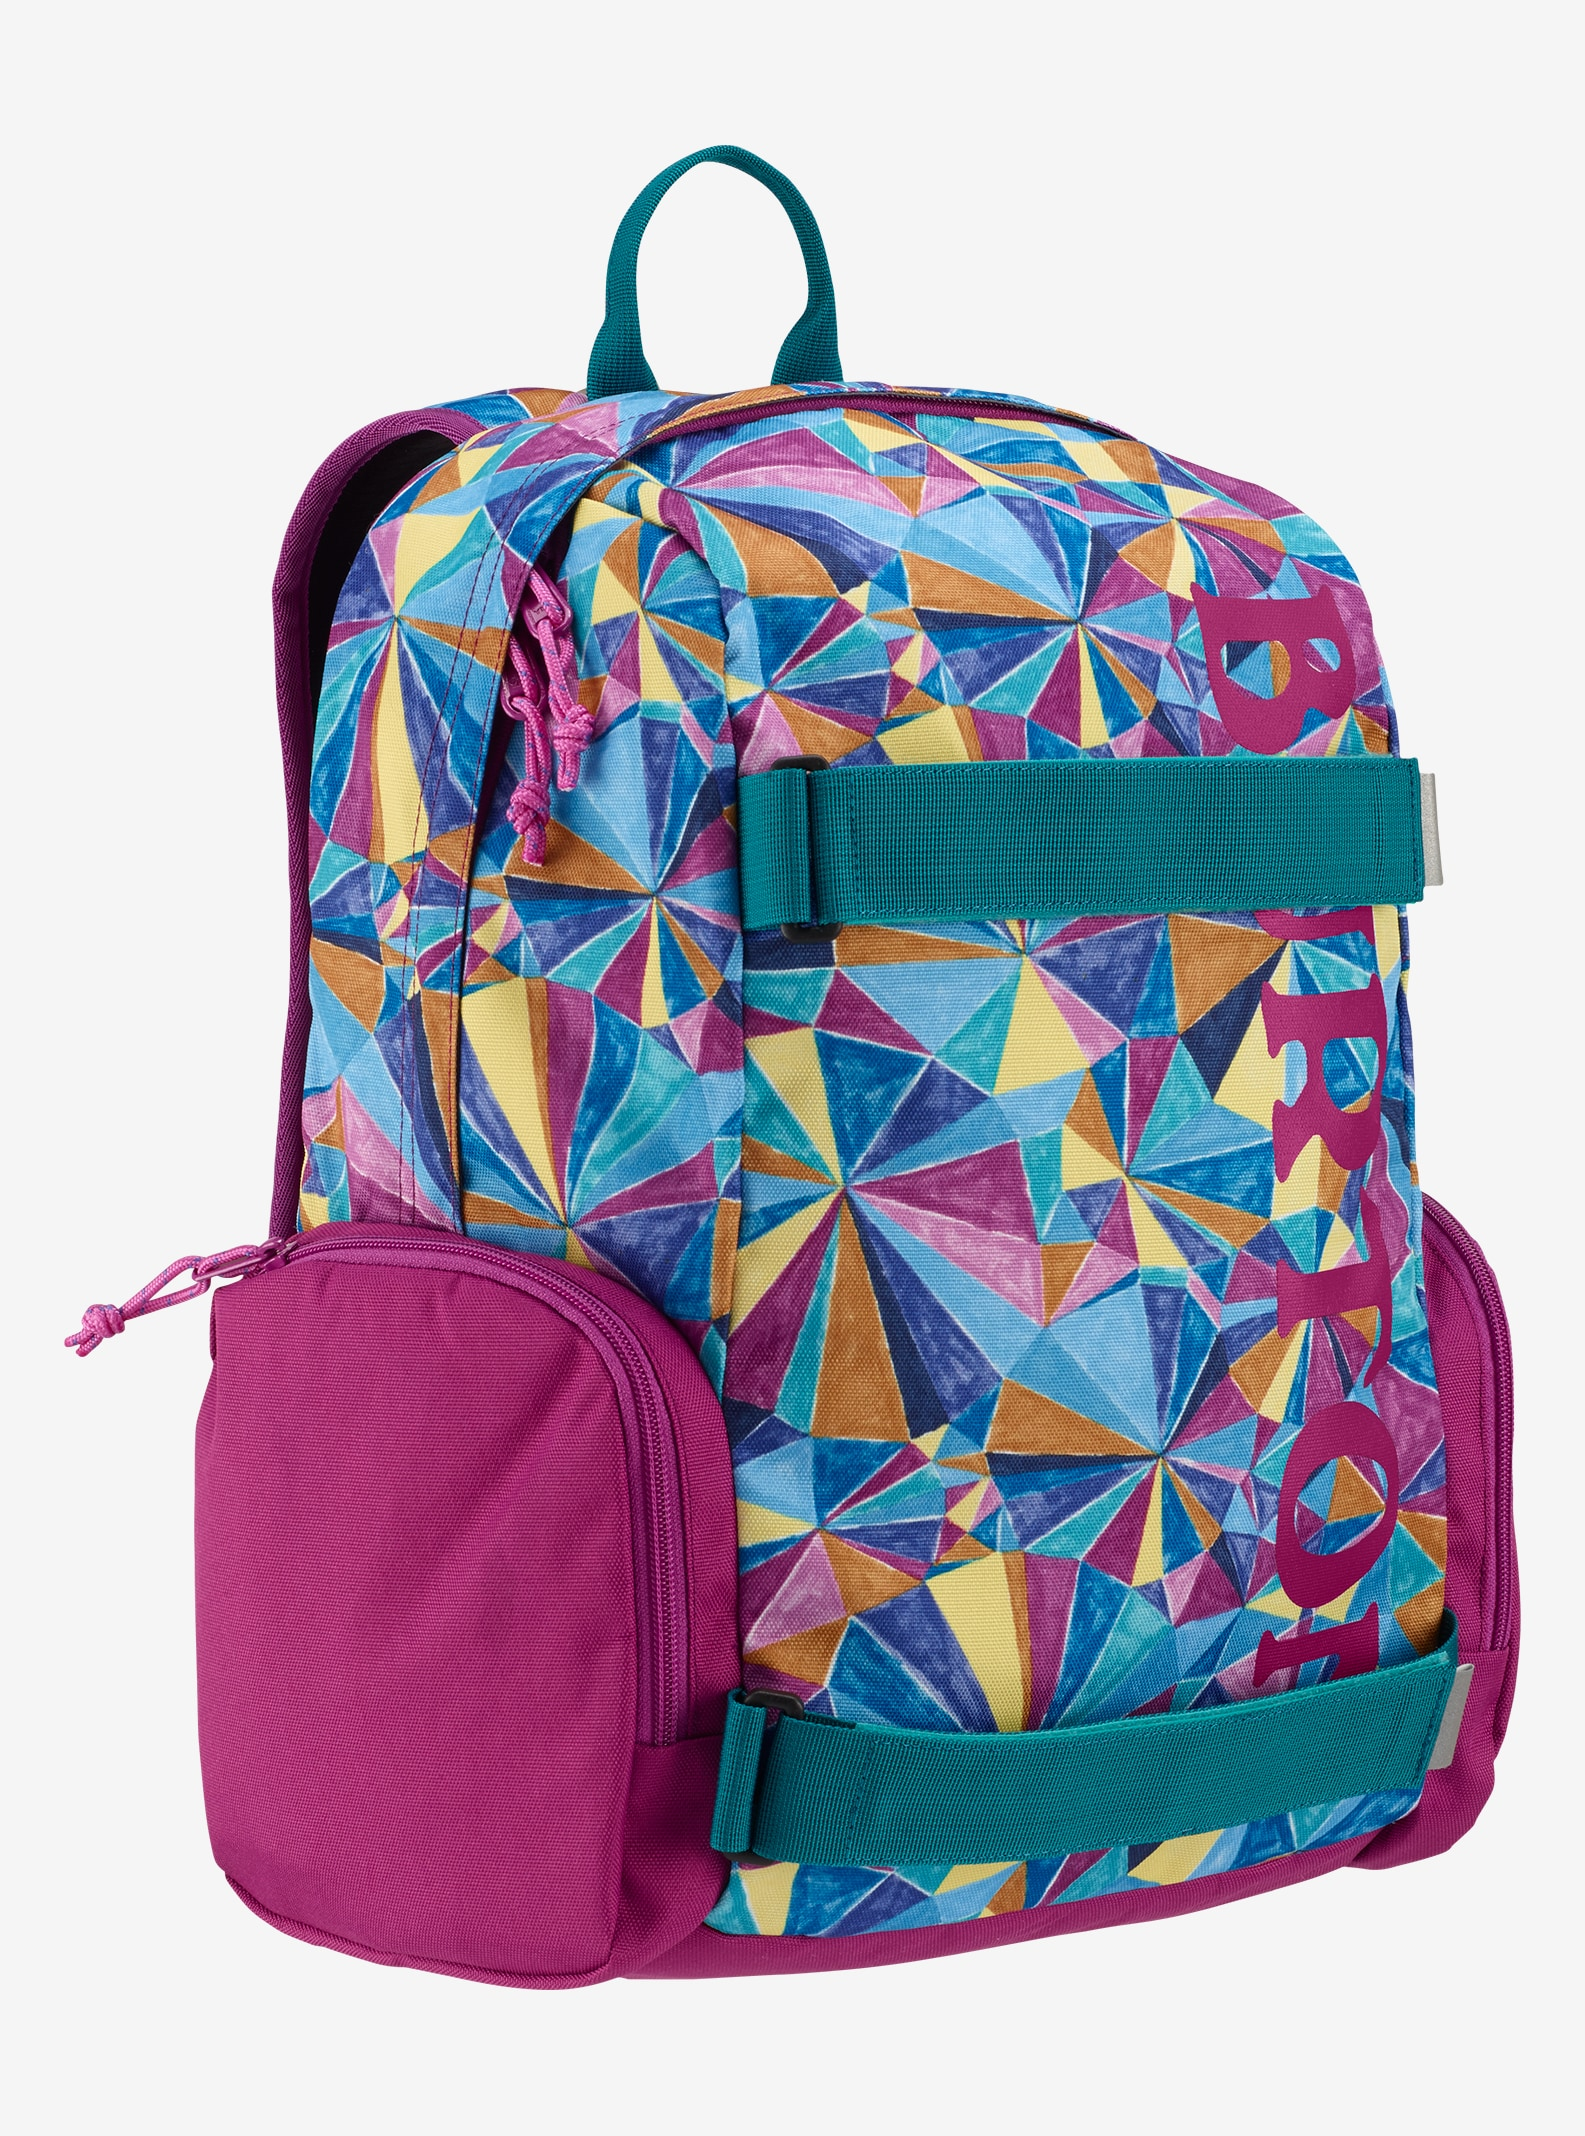 Burton Kids' Emphasis Backpack shown in Polka Diamond Print